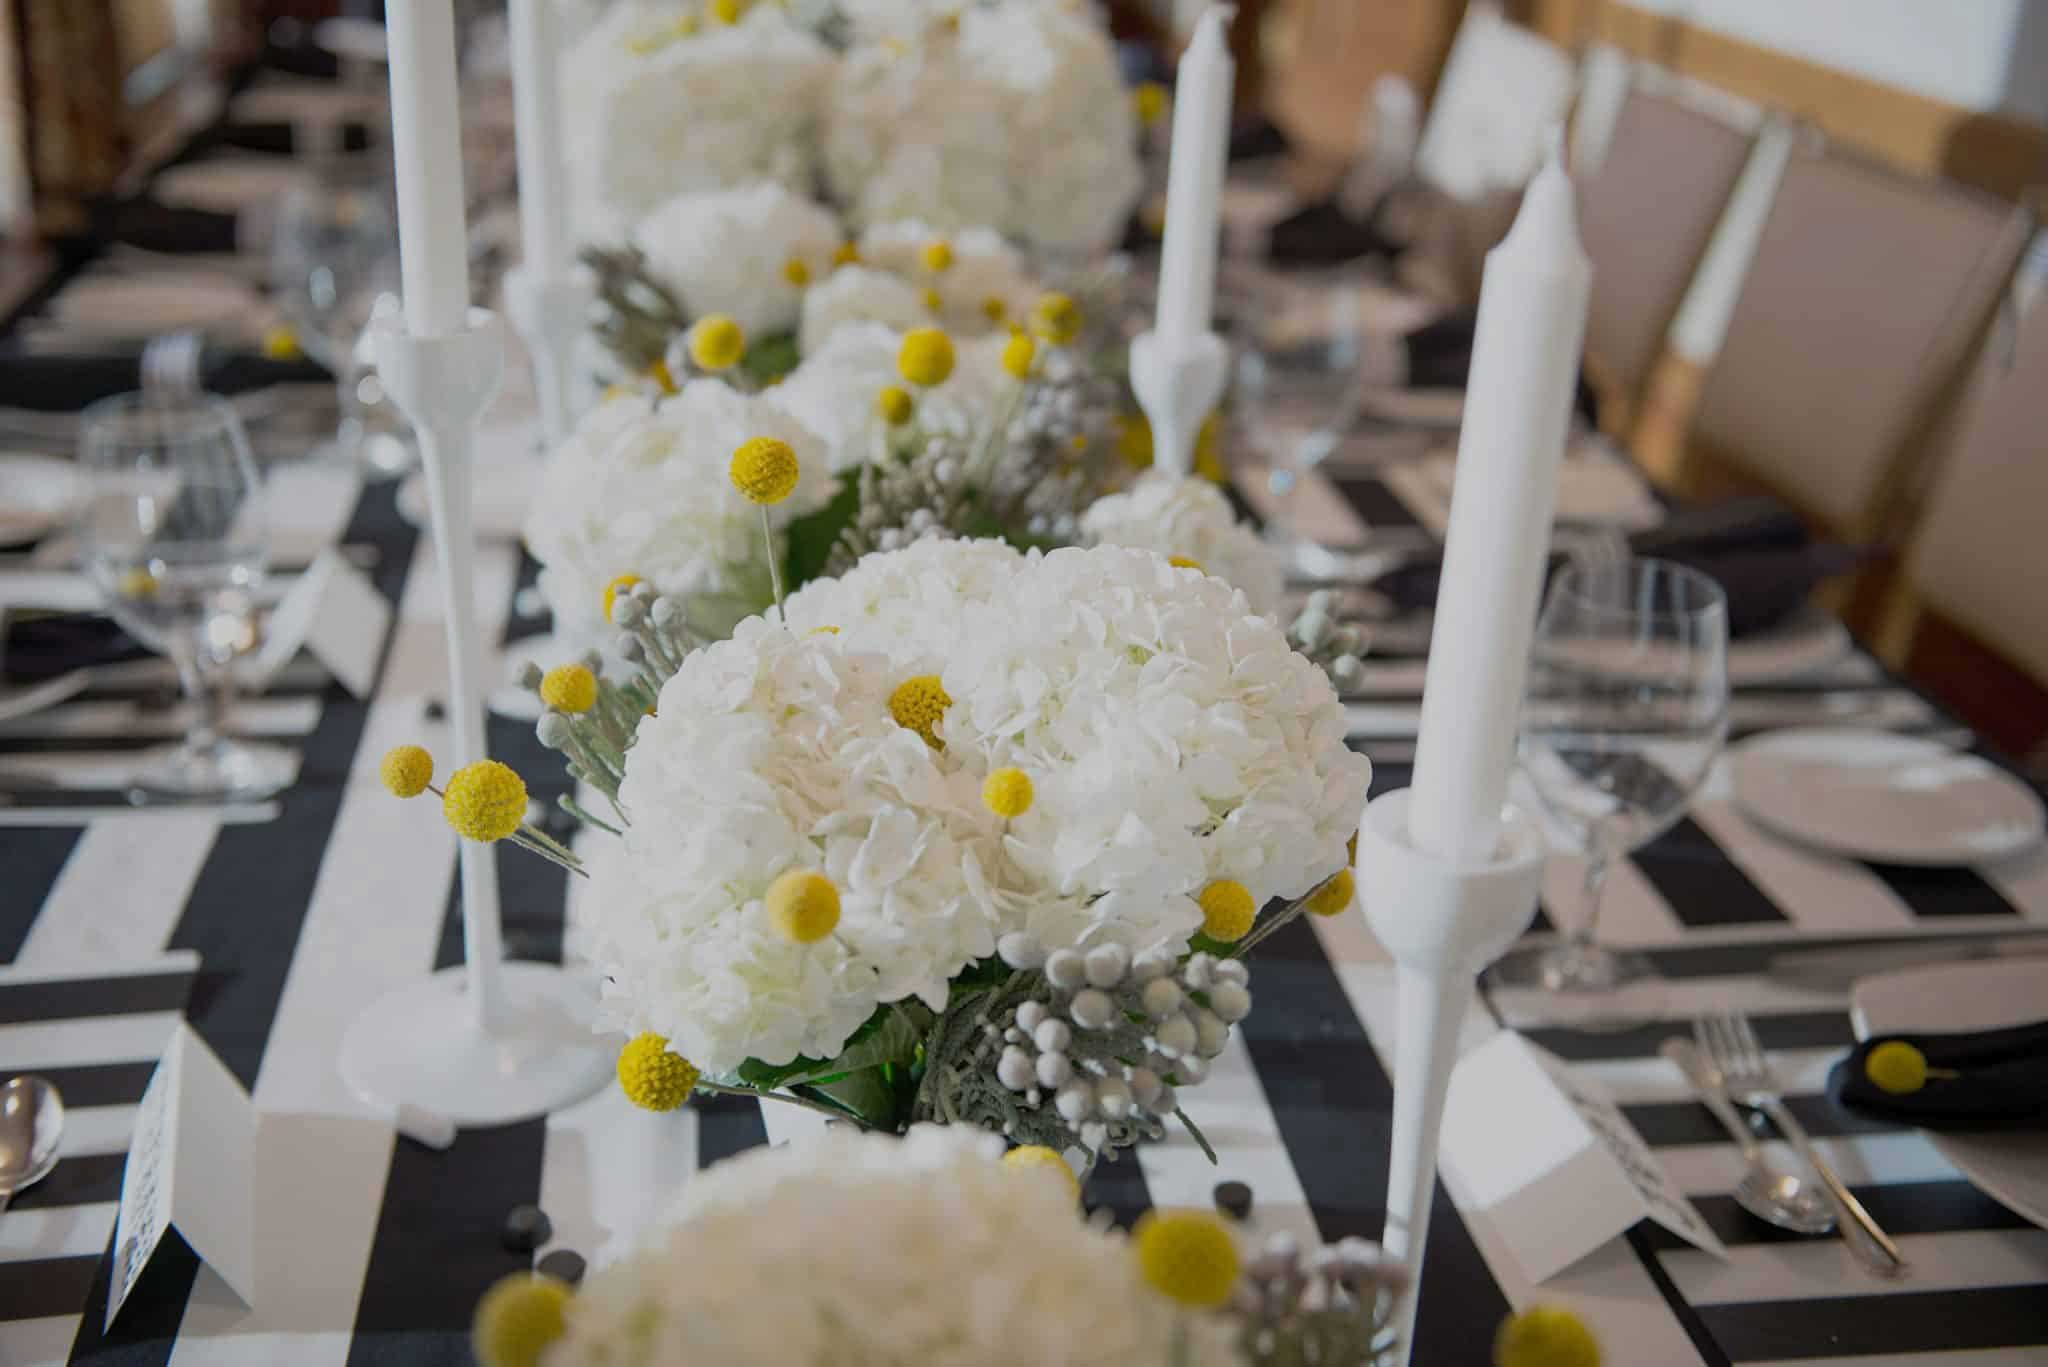 Long rectangular table set with everything in black and white stripes including table cloth, flower pots, place matts, napkin ring. Beautiful repeating centerpieces of white hydrangeas and yellow ball and silver ball shaped accent pieces, white candles in white candle stick holders.